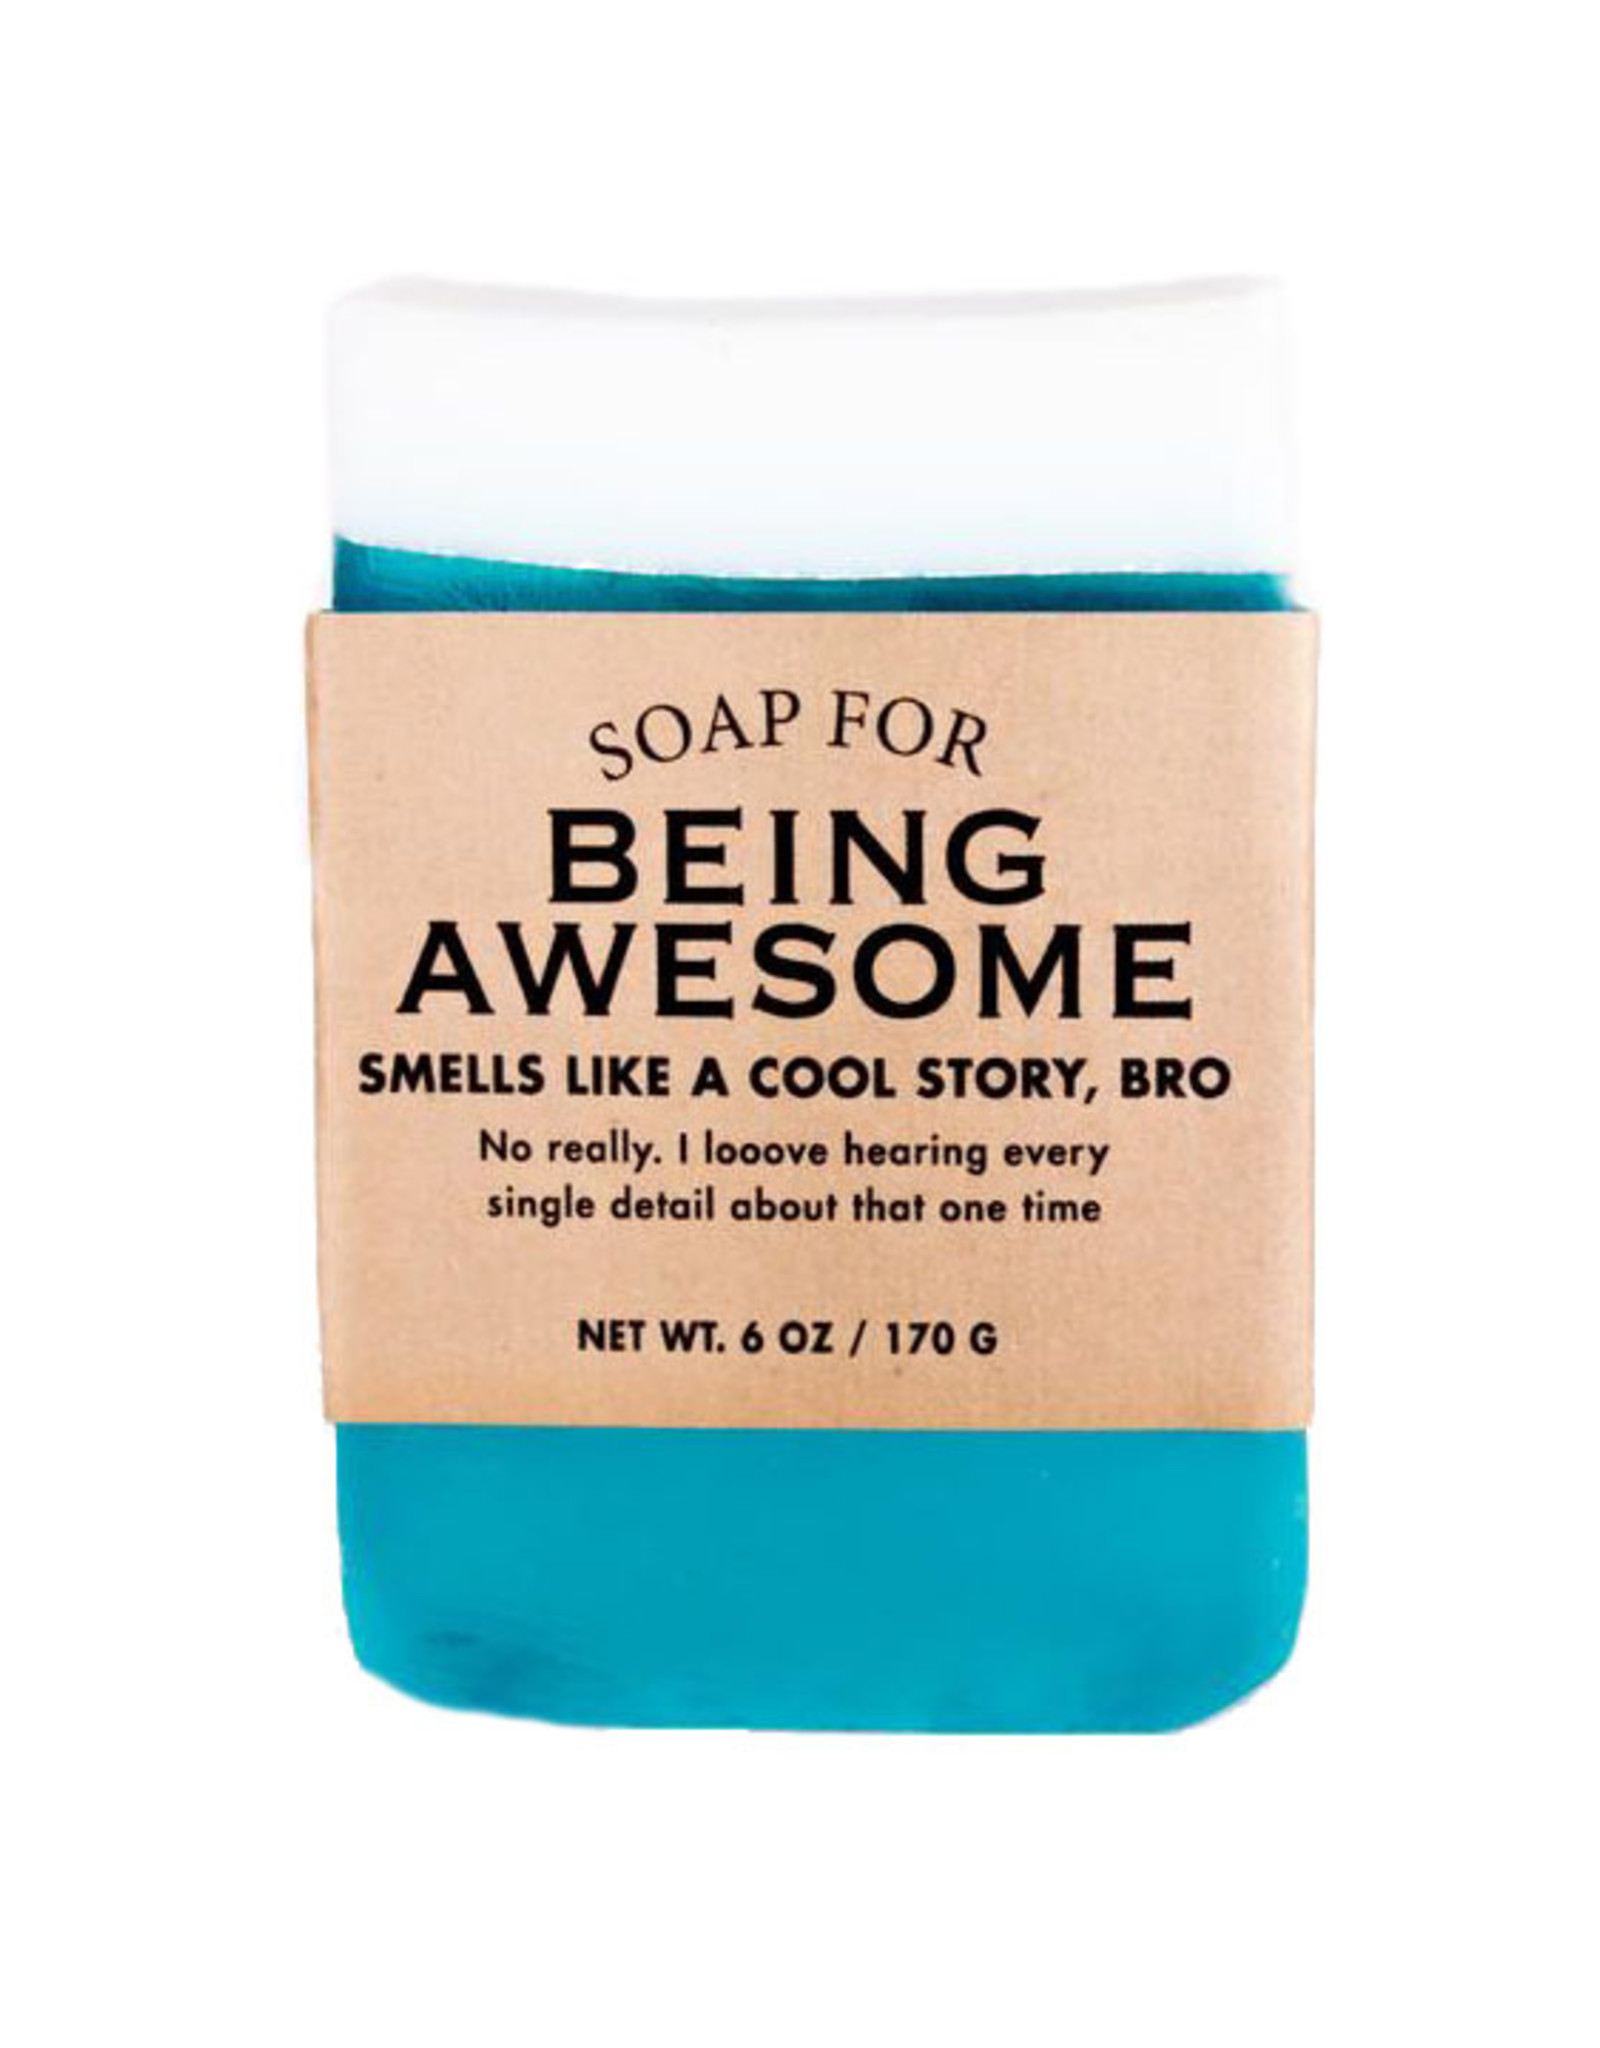 A Soap for Being Awesome